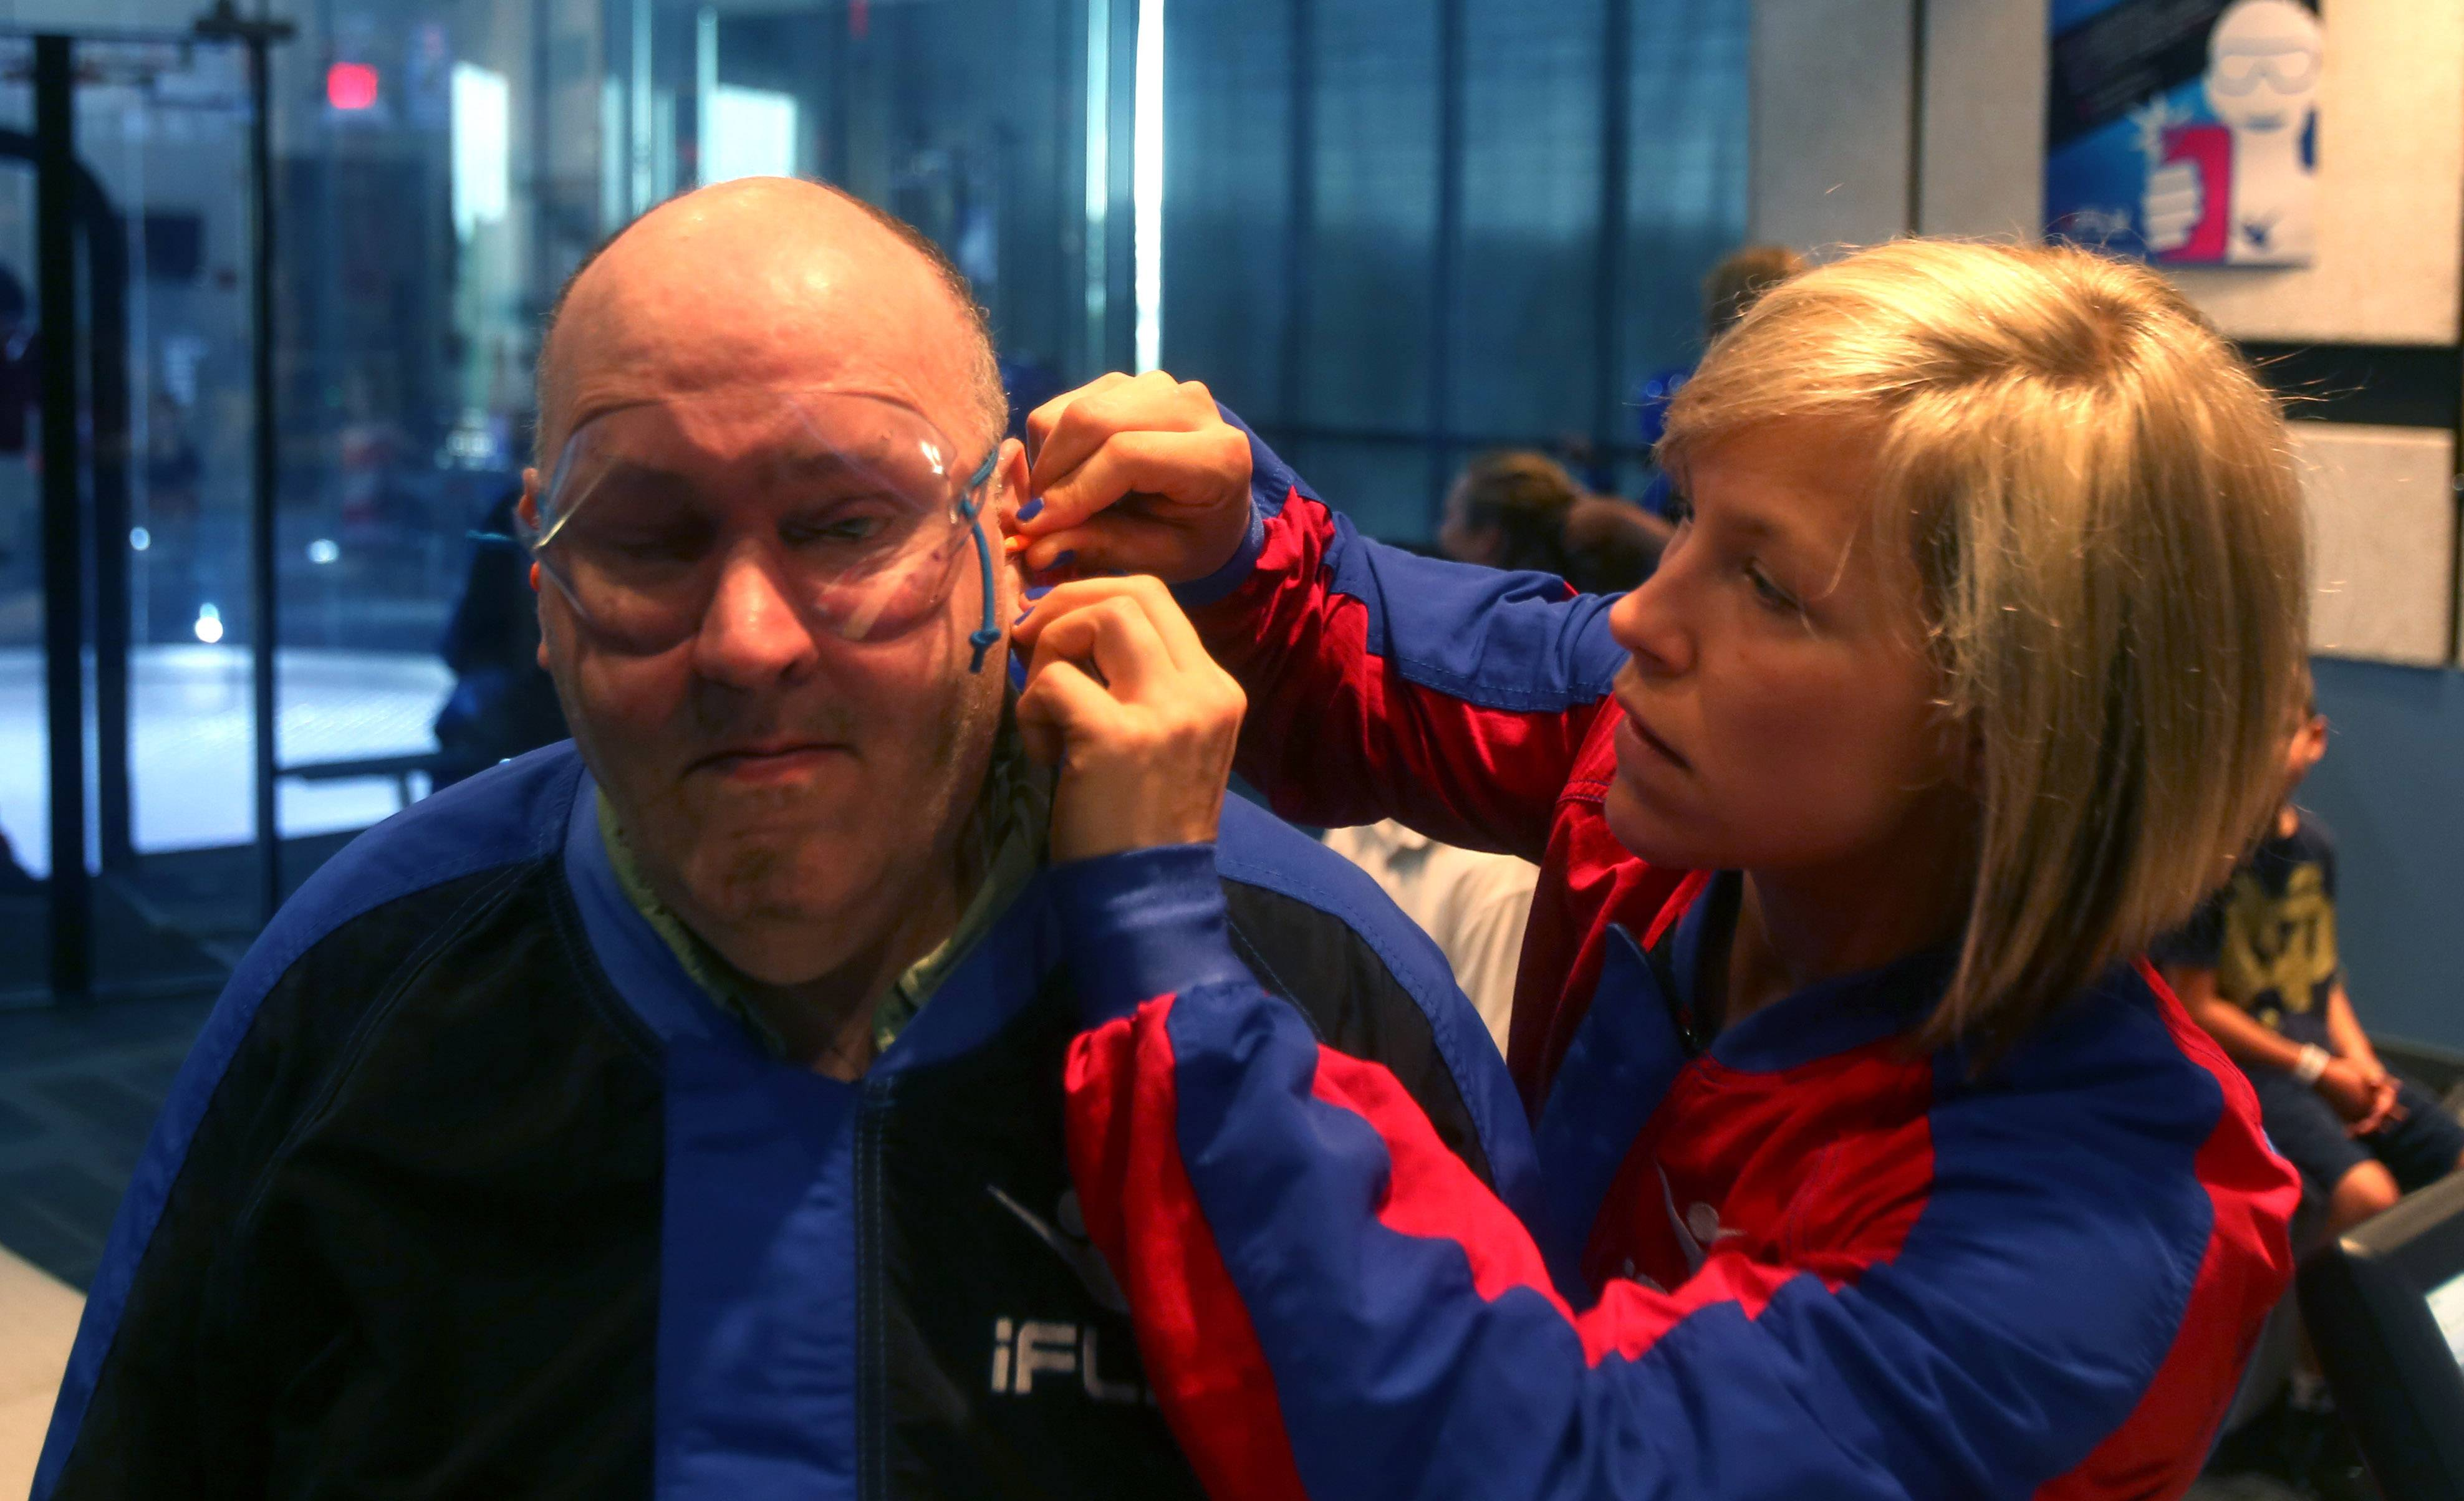 Otto Becker, 67, of Aurora is blind but ready to experience the rush of indoor sky diving at iFly in Naperville. Instructor Kristin Miller adjusts Becker's eye protection.